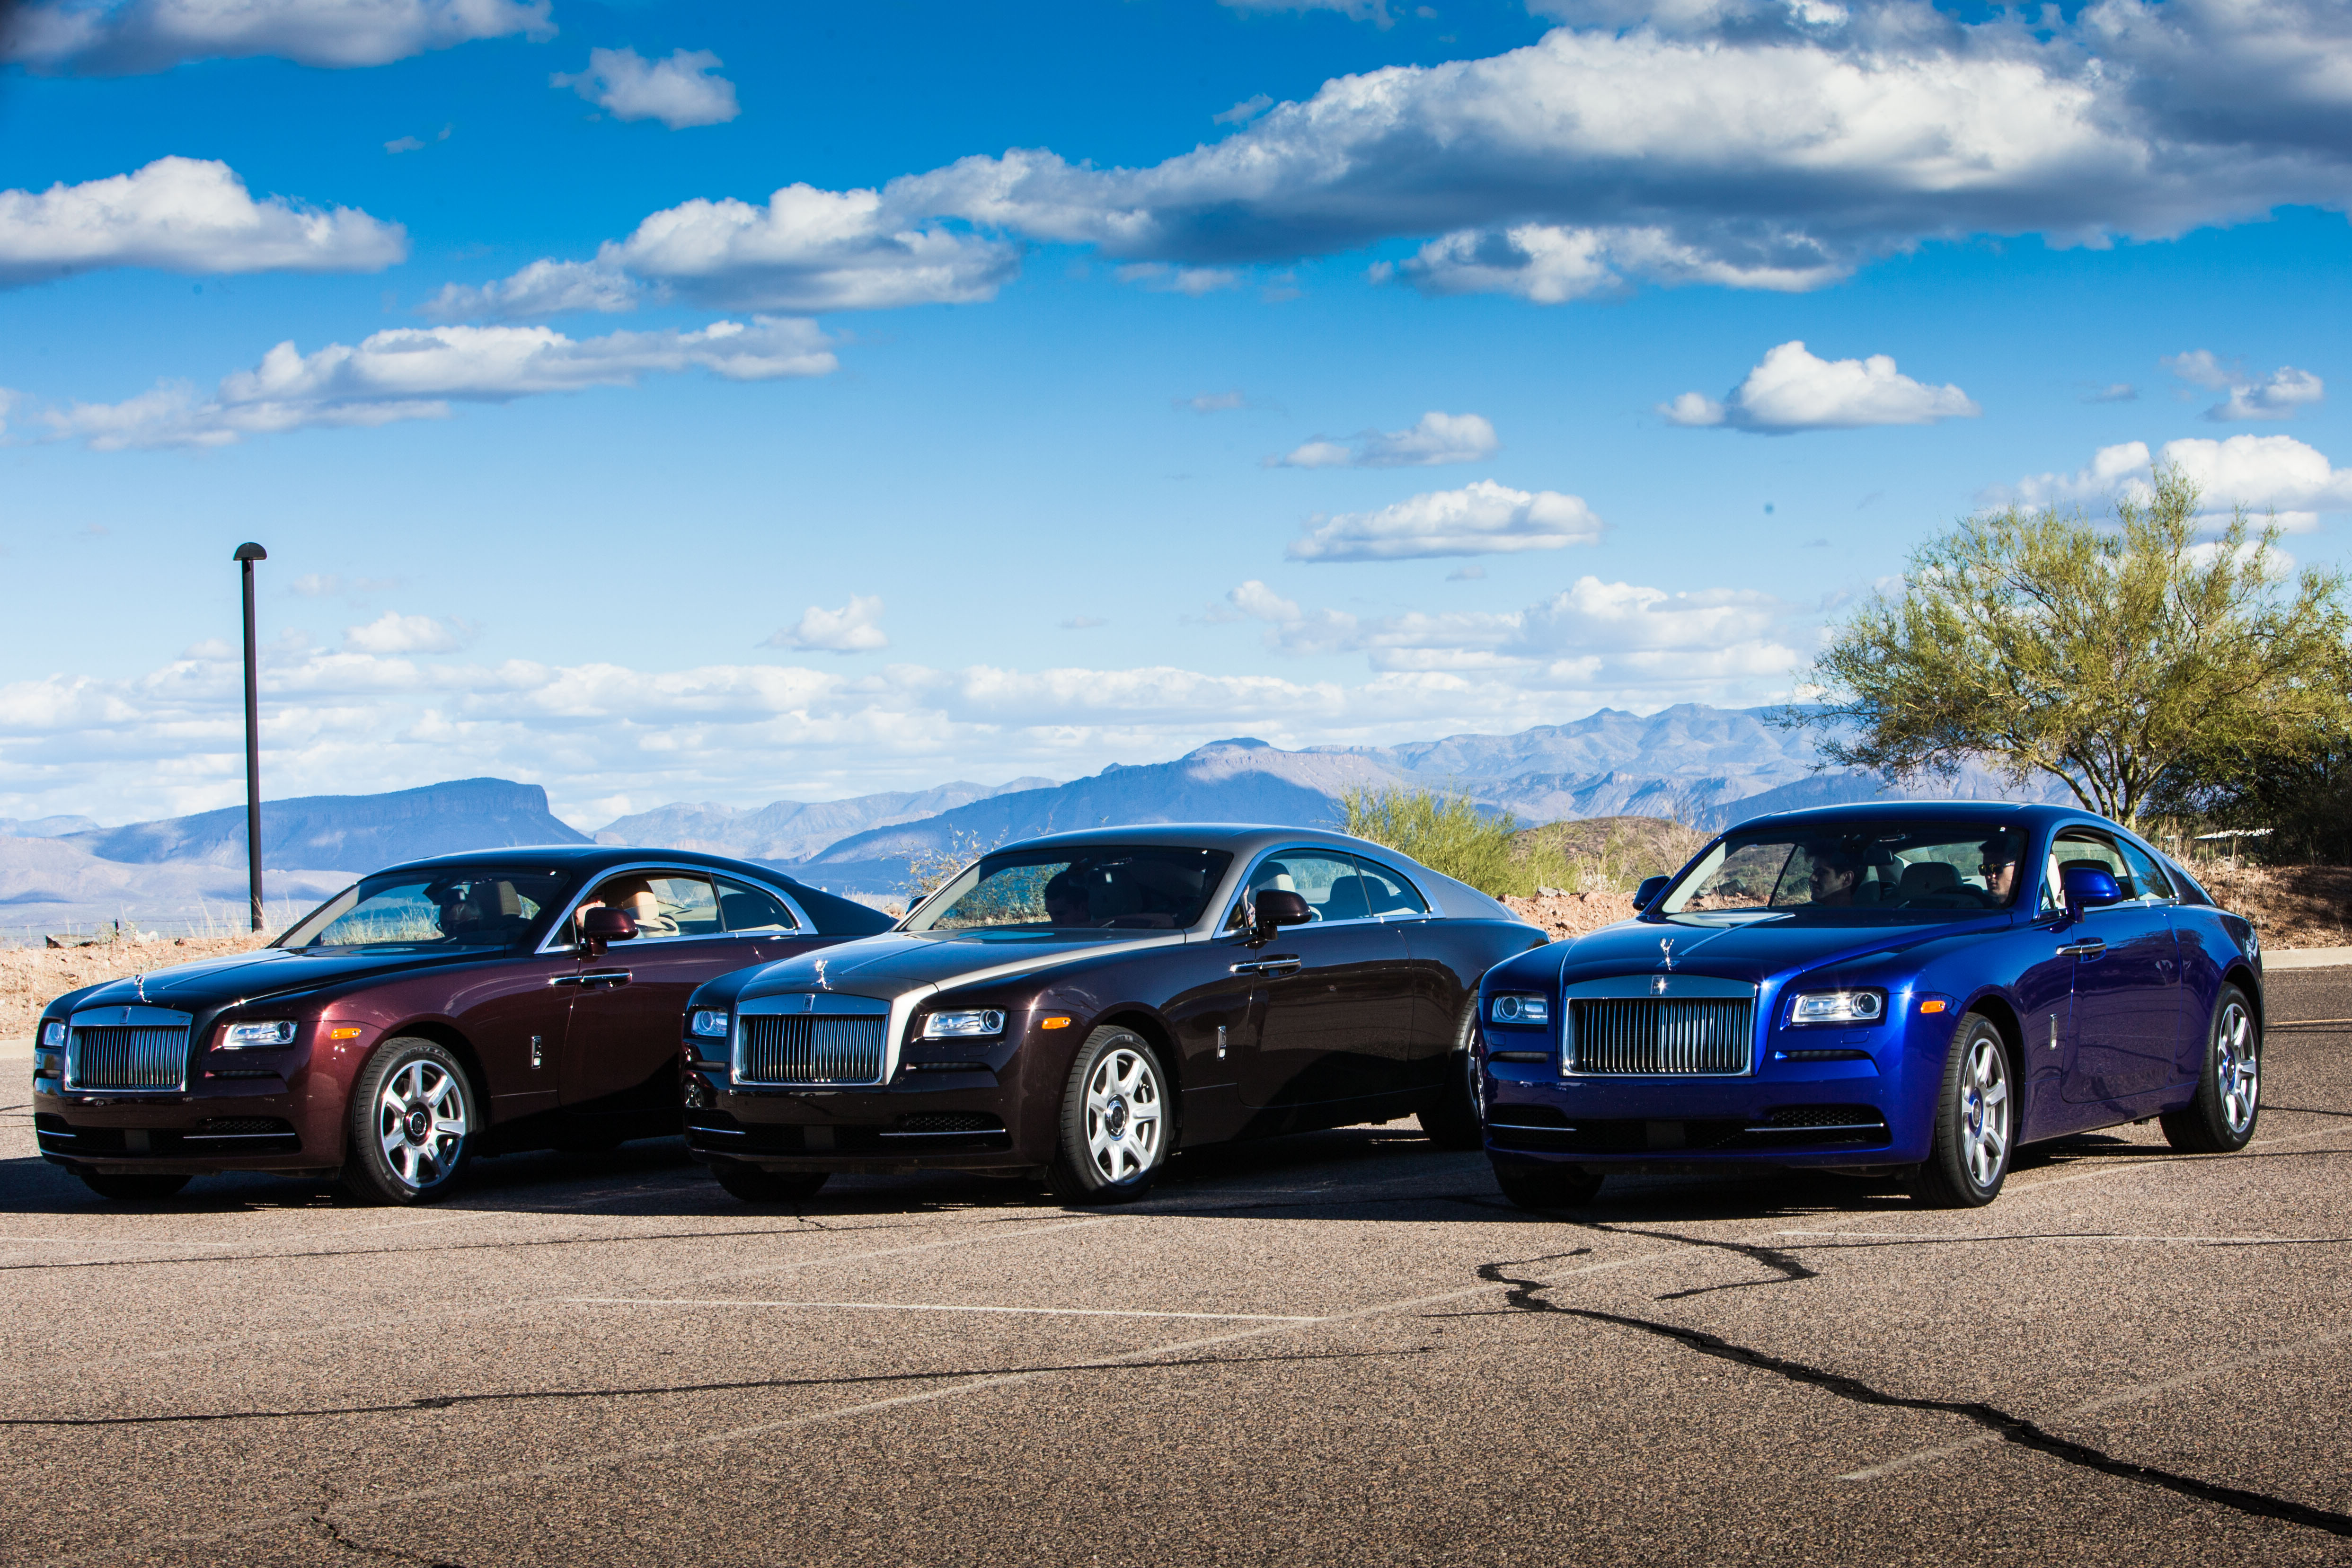 MG 7001 Exclusive: 2013 Rolls Royce Wraith   All You Need to Know